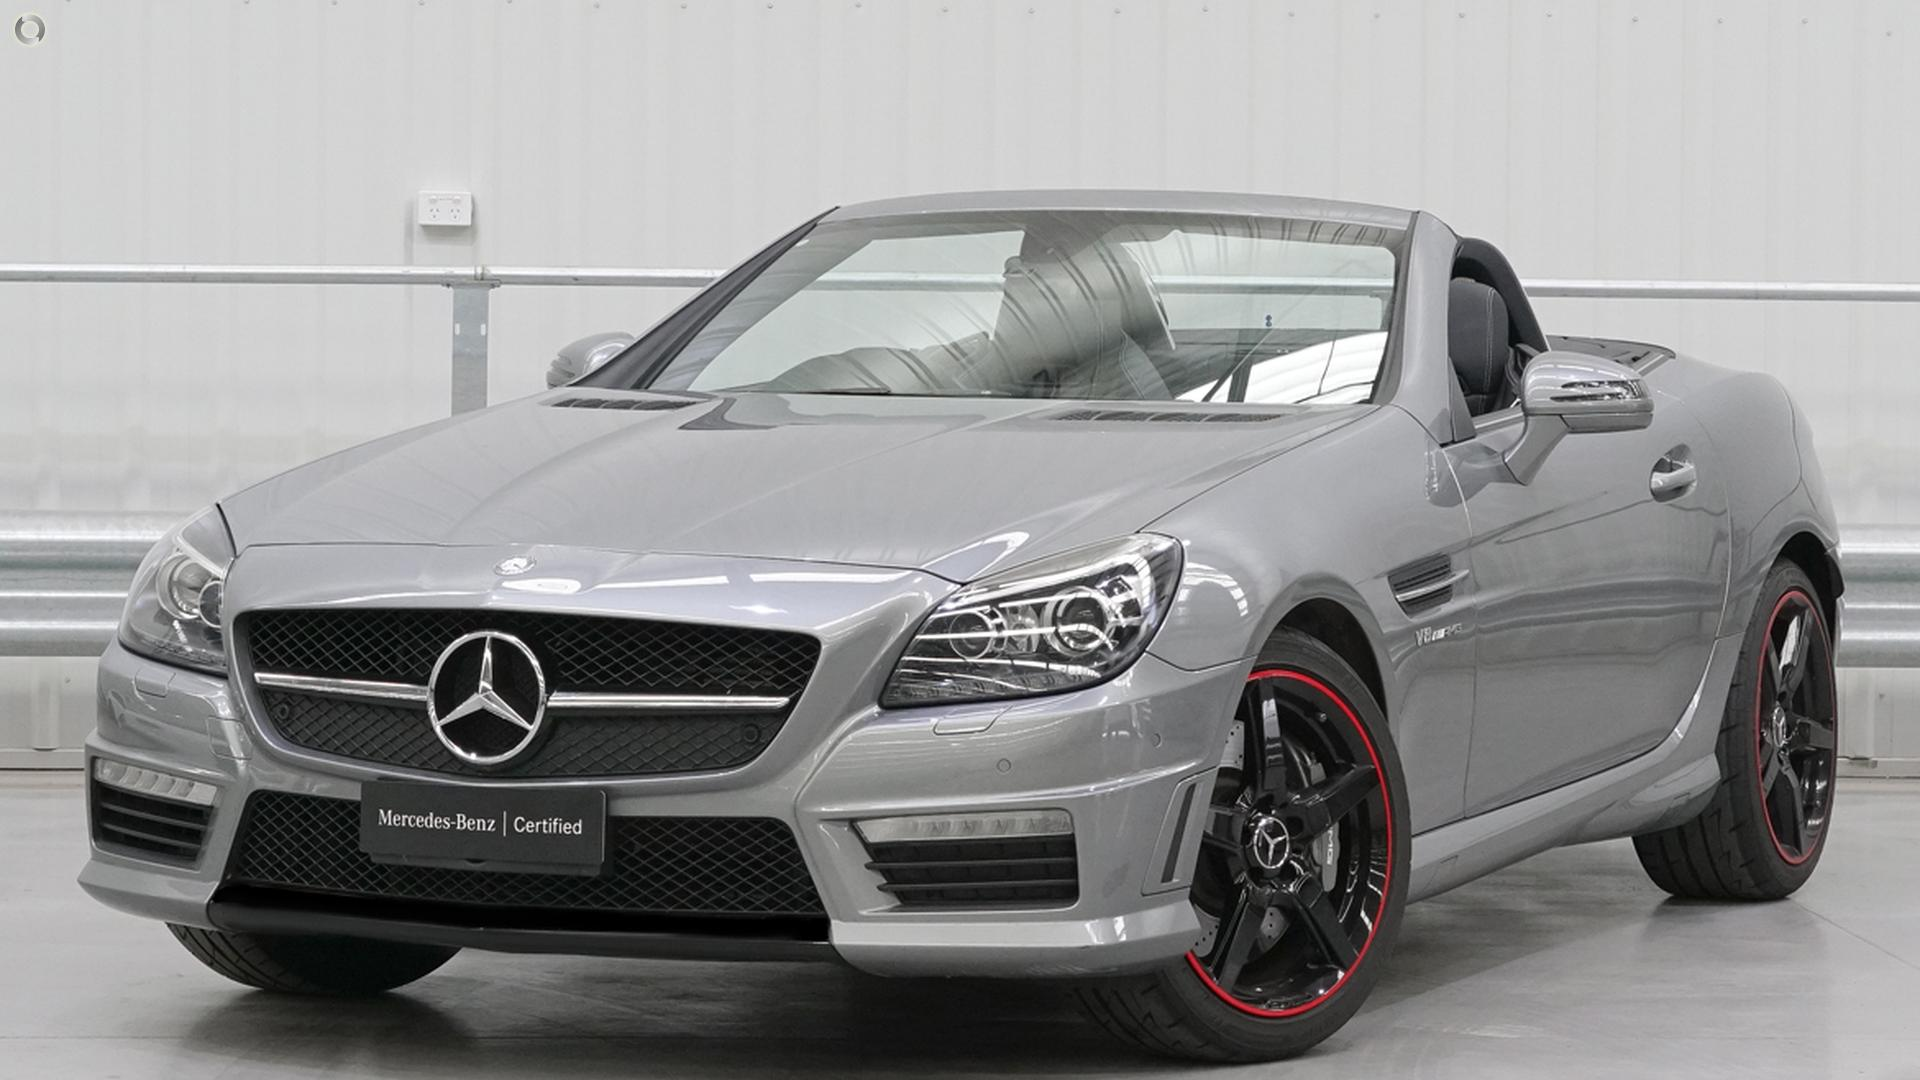 2013 Mercedes-Benz SLK 55 AMG Roadster